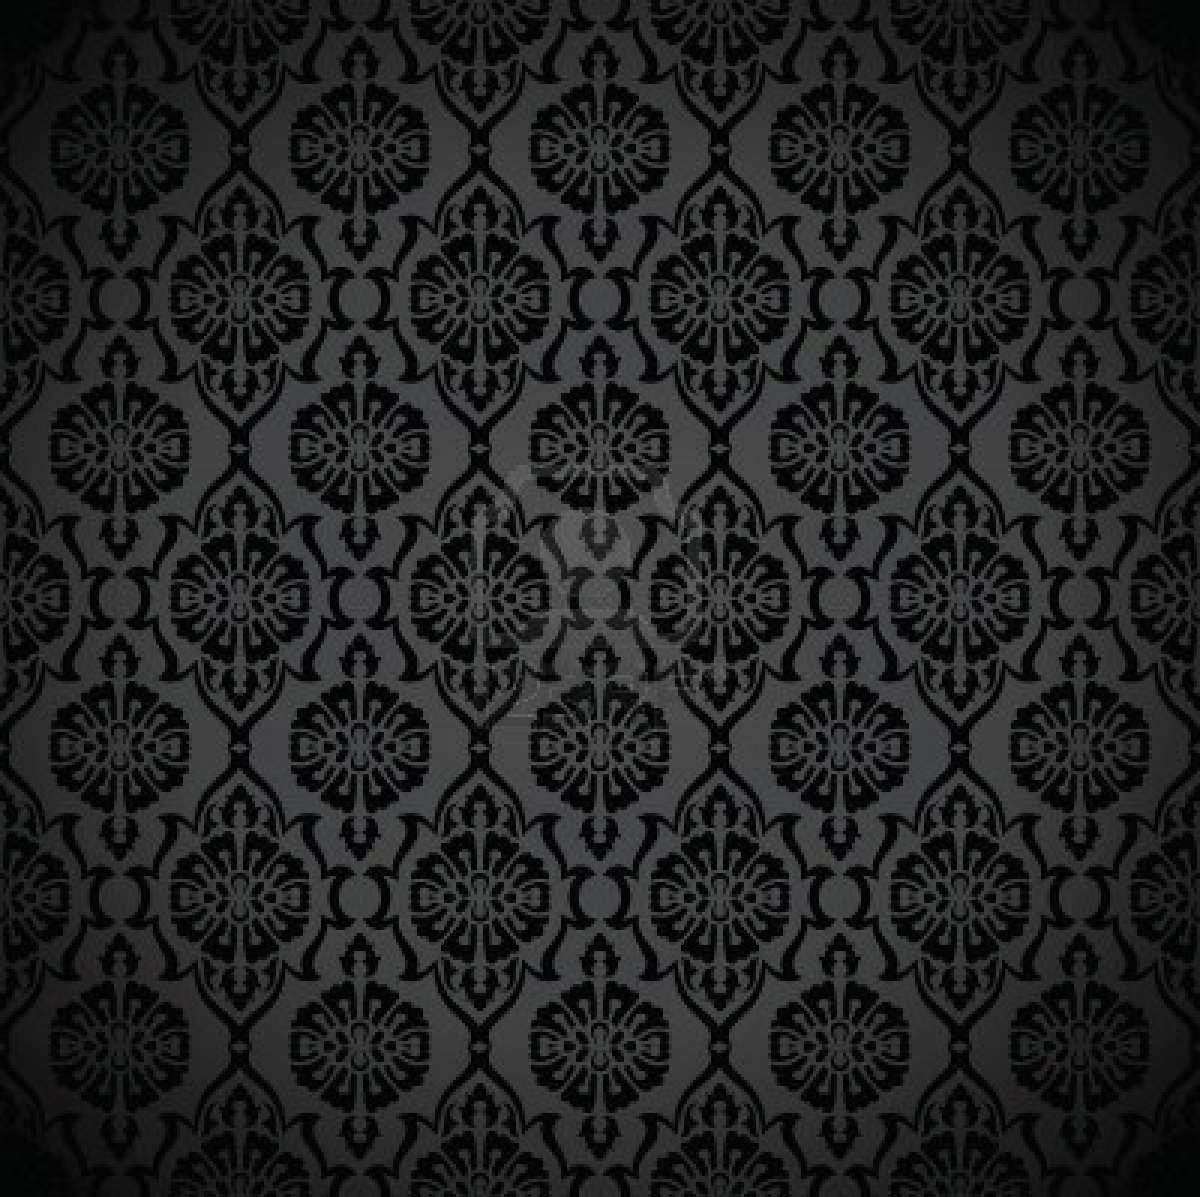 17009917 Seamless Rich Black Wallpaper And Background